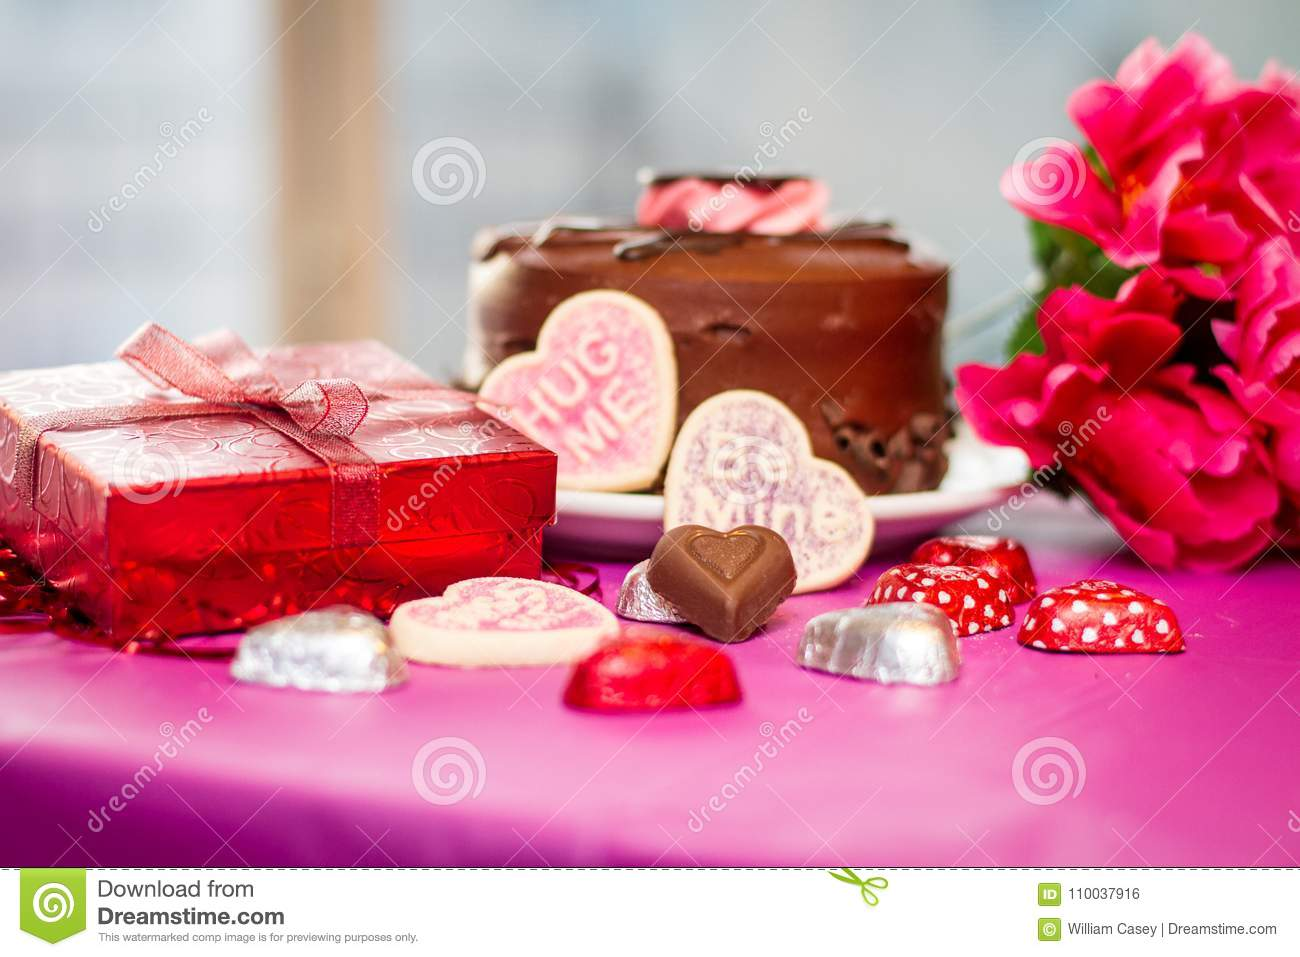 Valentines Cake And Cookies With Present Stock Photo - Image of ...